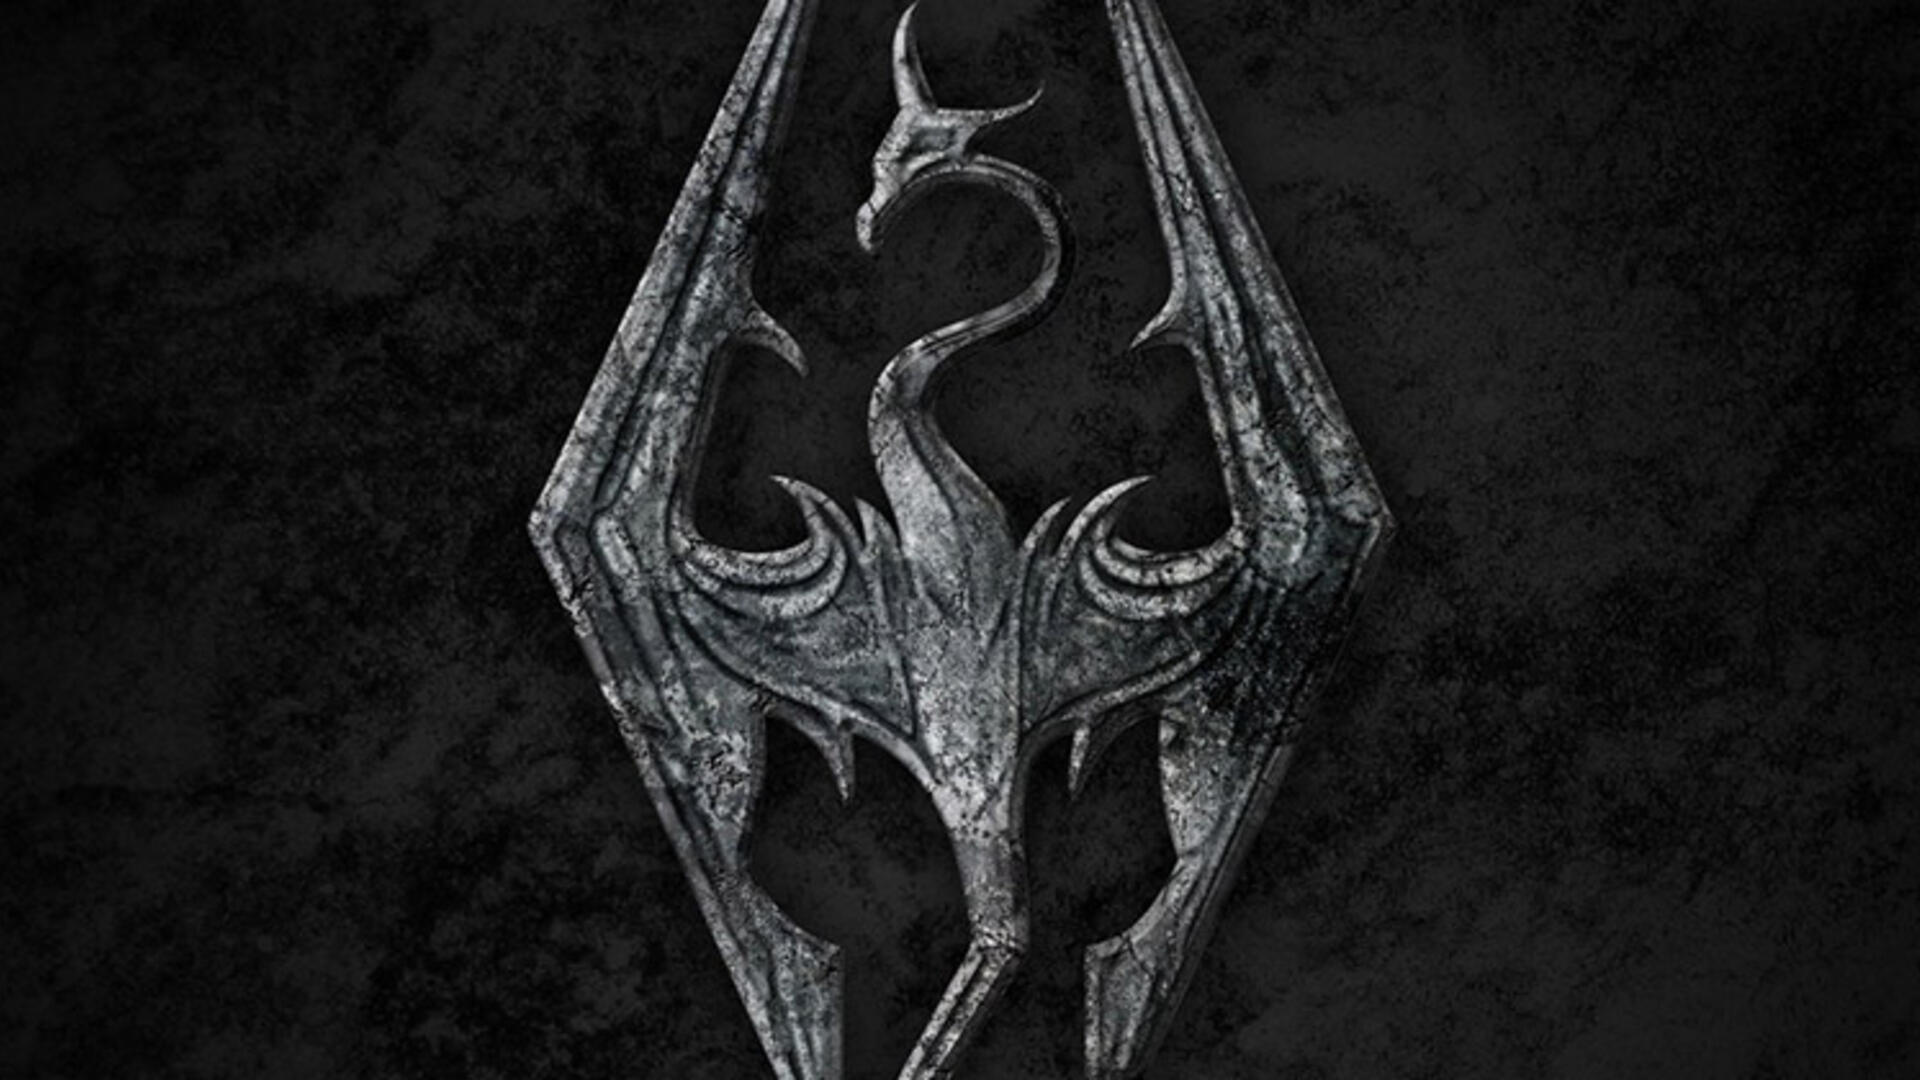 Skyrim Alduin's Wall Quest Guide - Complete Walkthrough, How